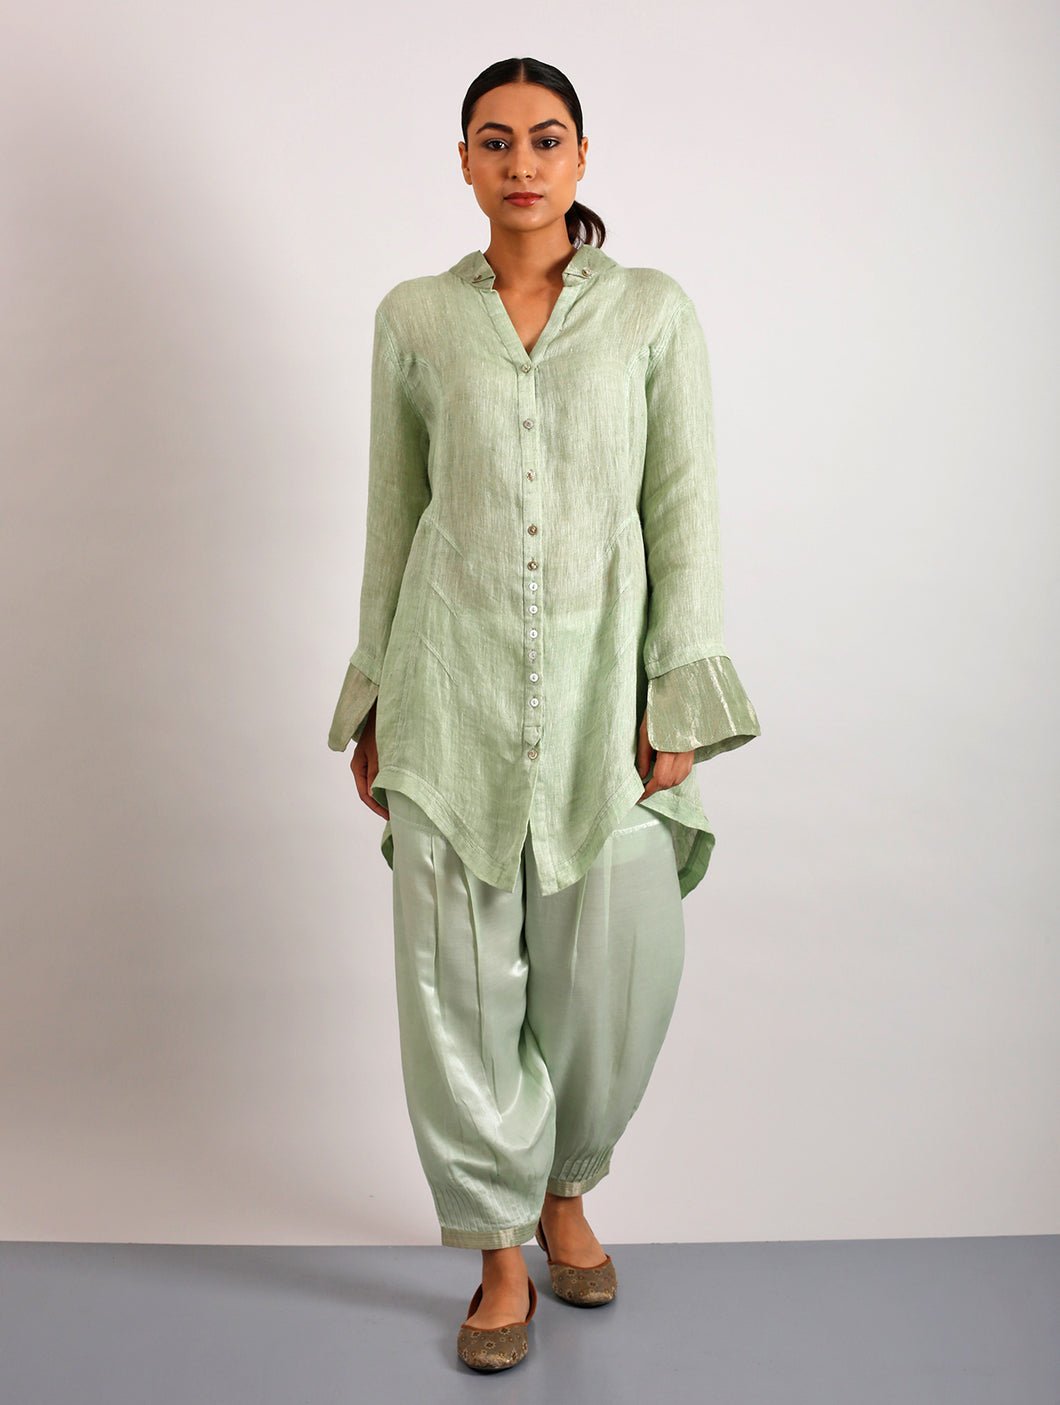 Danielle Metallic Linen Asymmetrical Shirt- Lime